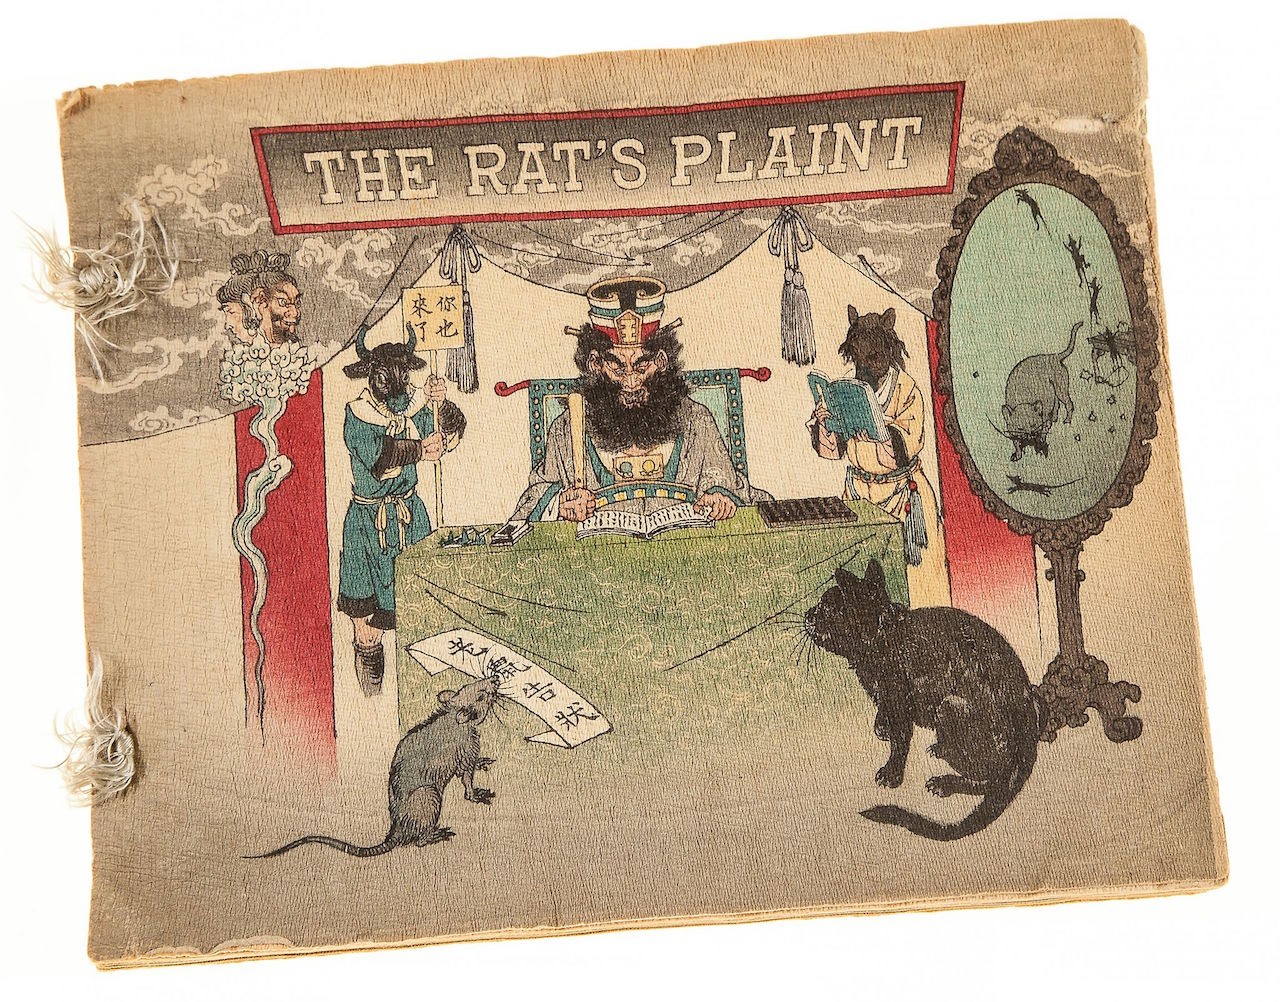 Illustration from 'The Rat's Plaint,' published by T. Hasegawa (c. 1900)